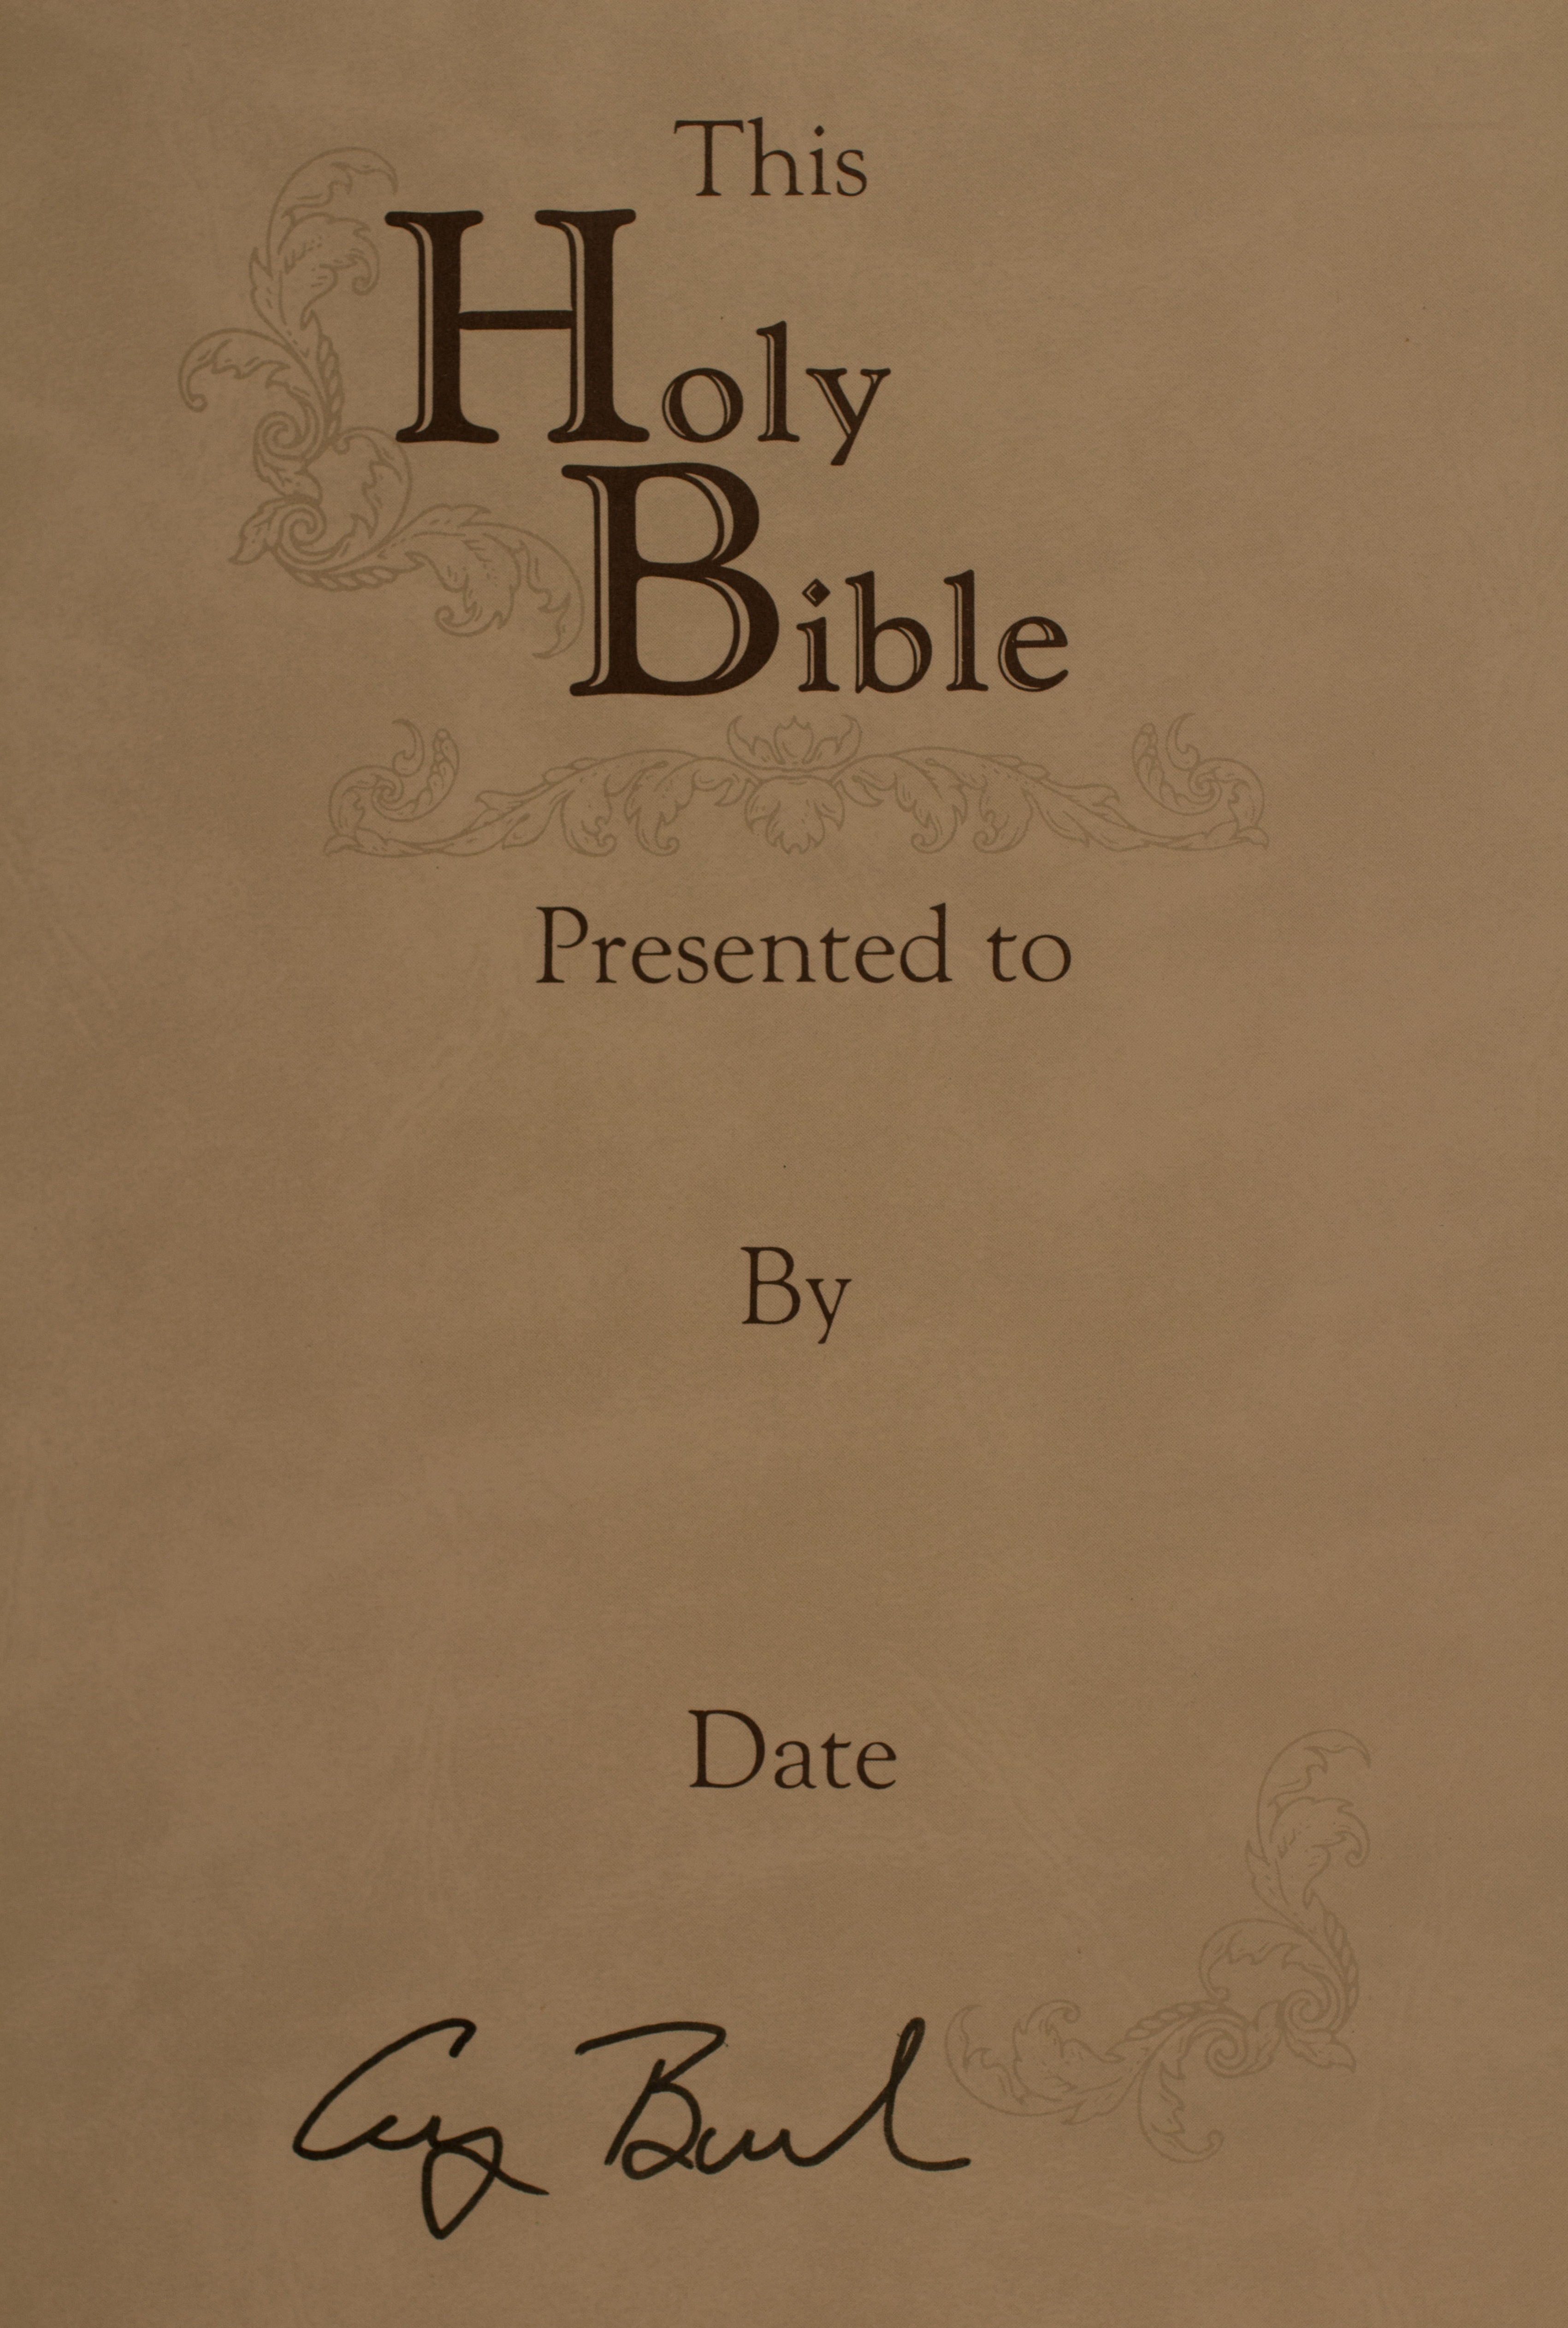 New Revised Standard Version Bible signed by President Bush